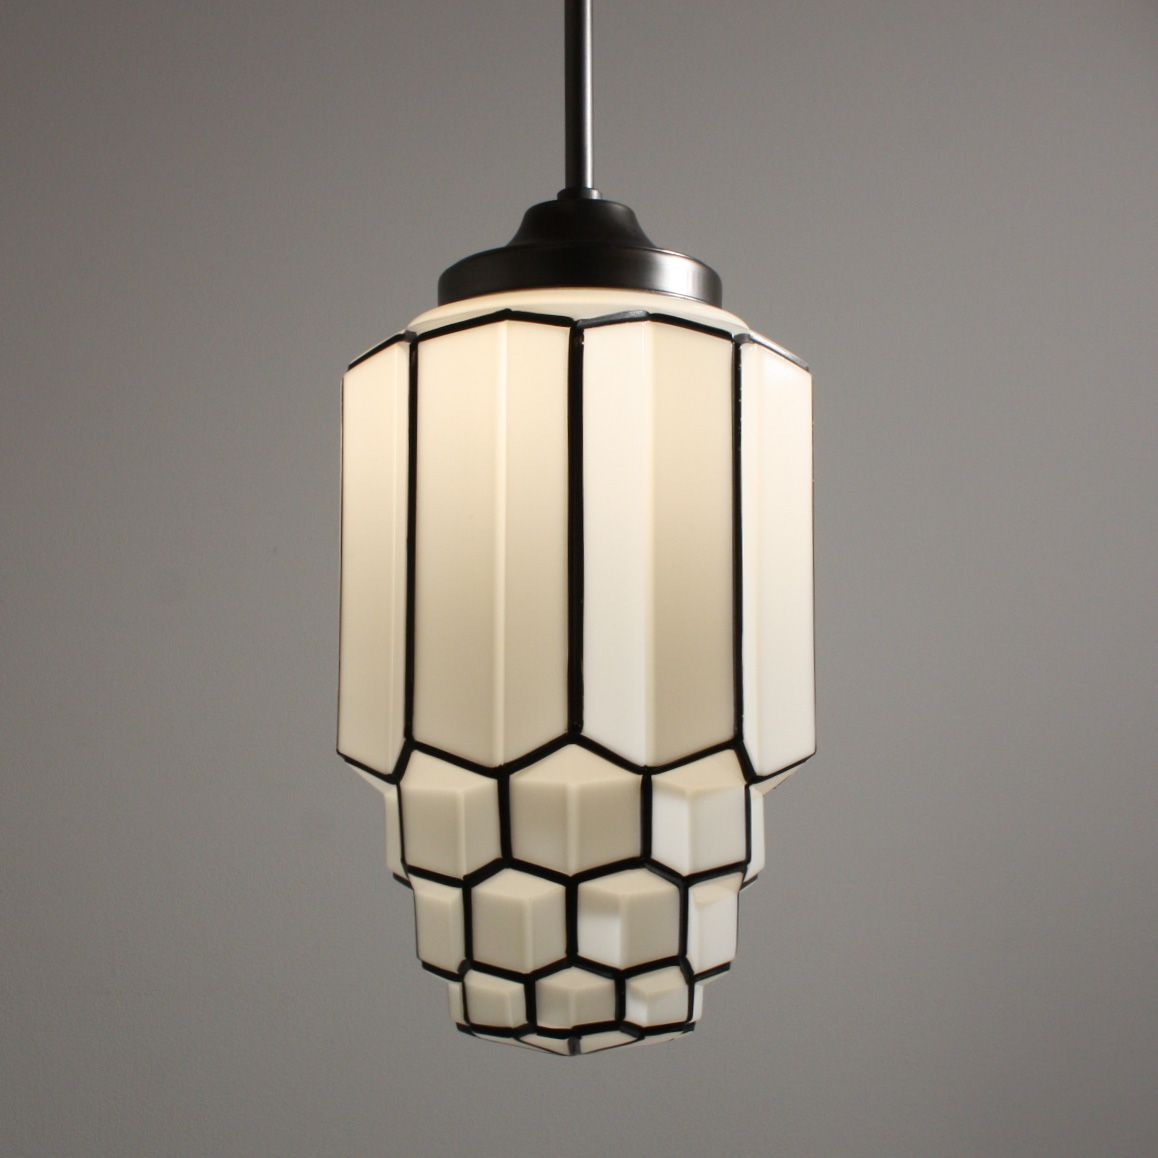 Bathroom Lights Art Deco: ... Vintage Art Deco Pendant